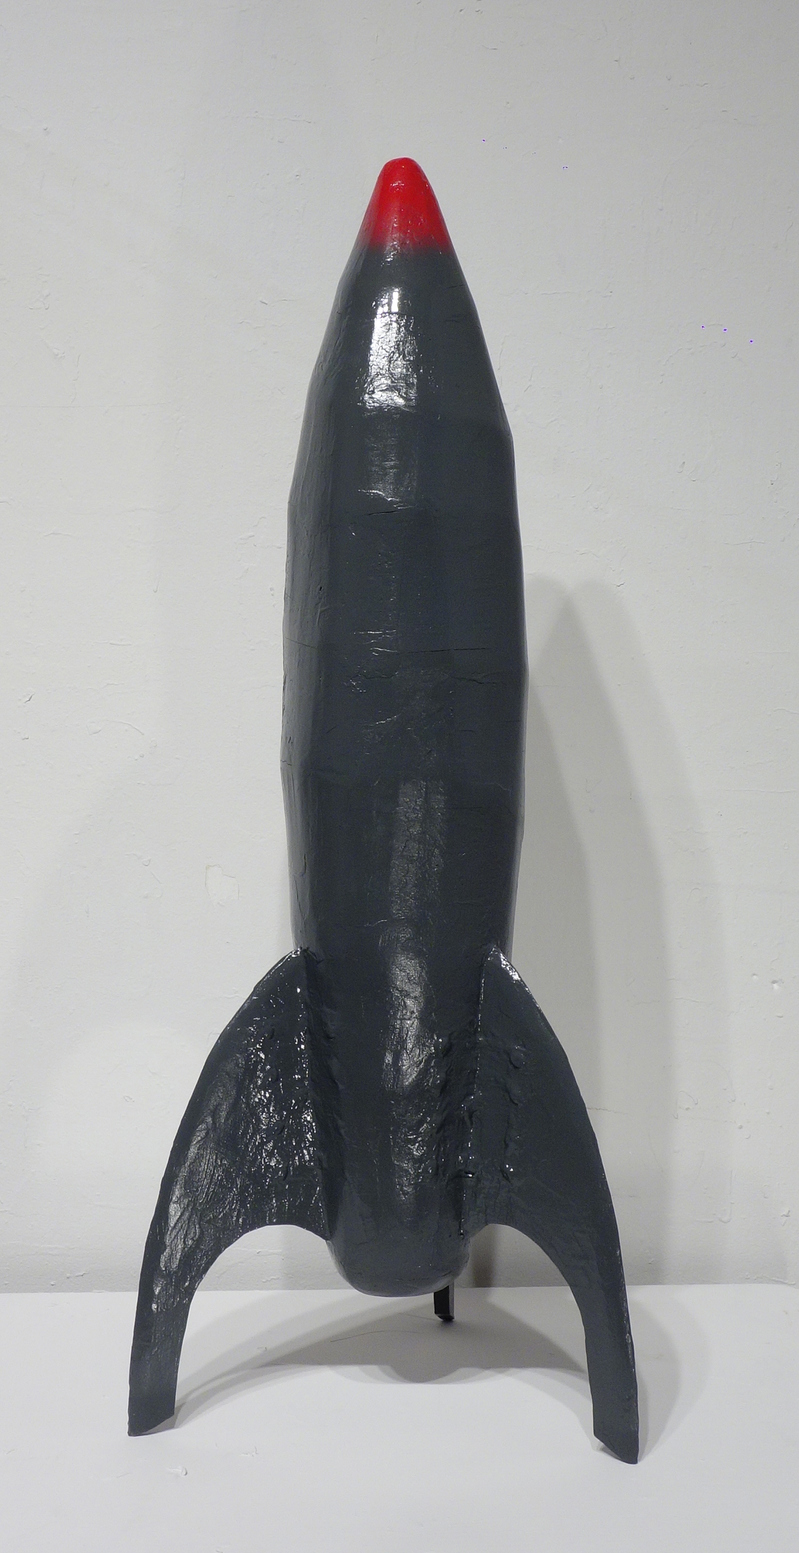 Present-2010 Rocket for Modular Sculpture (working title)